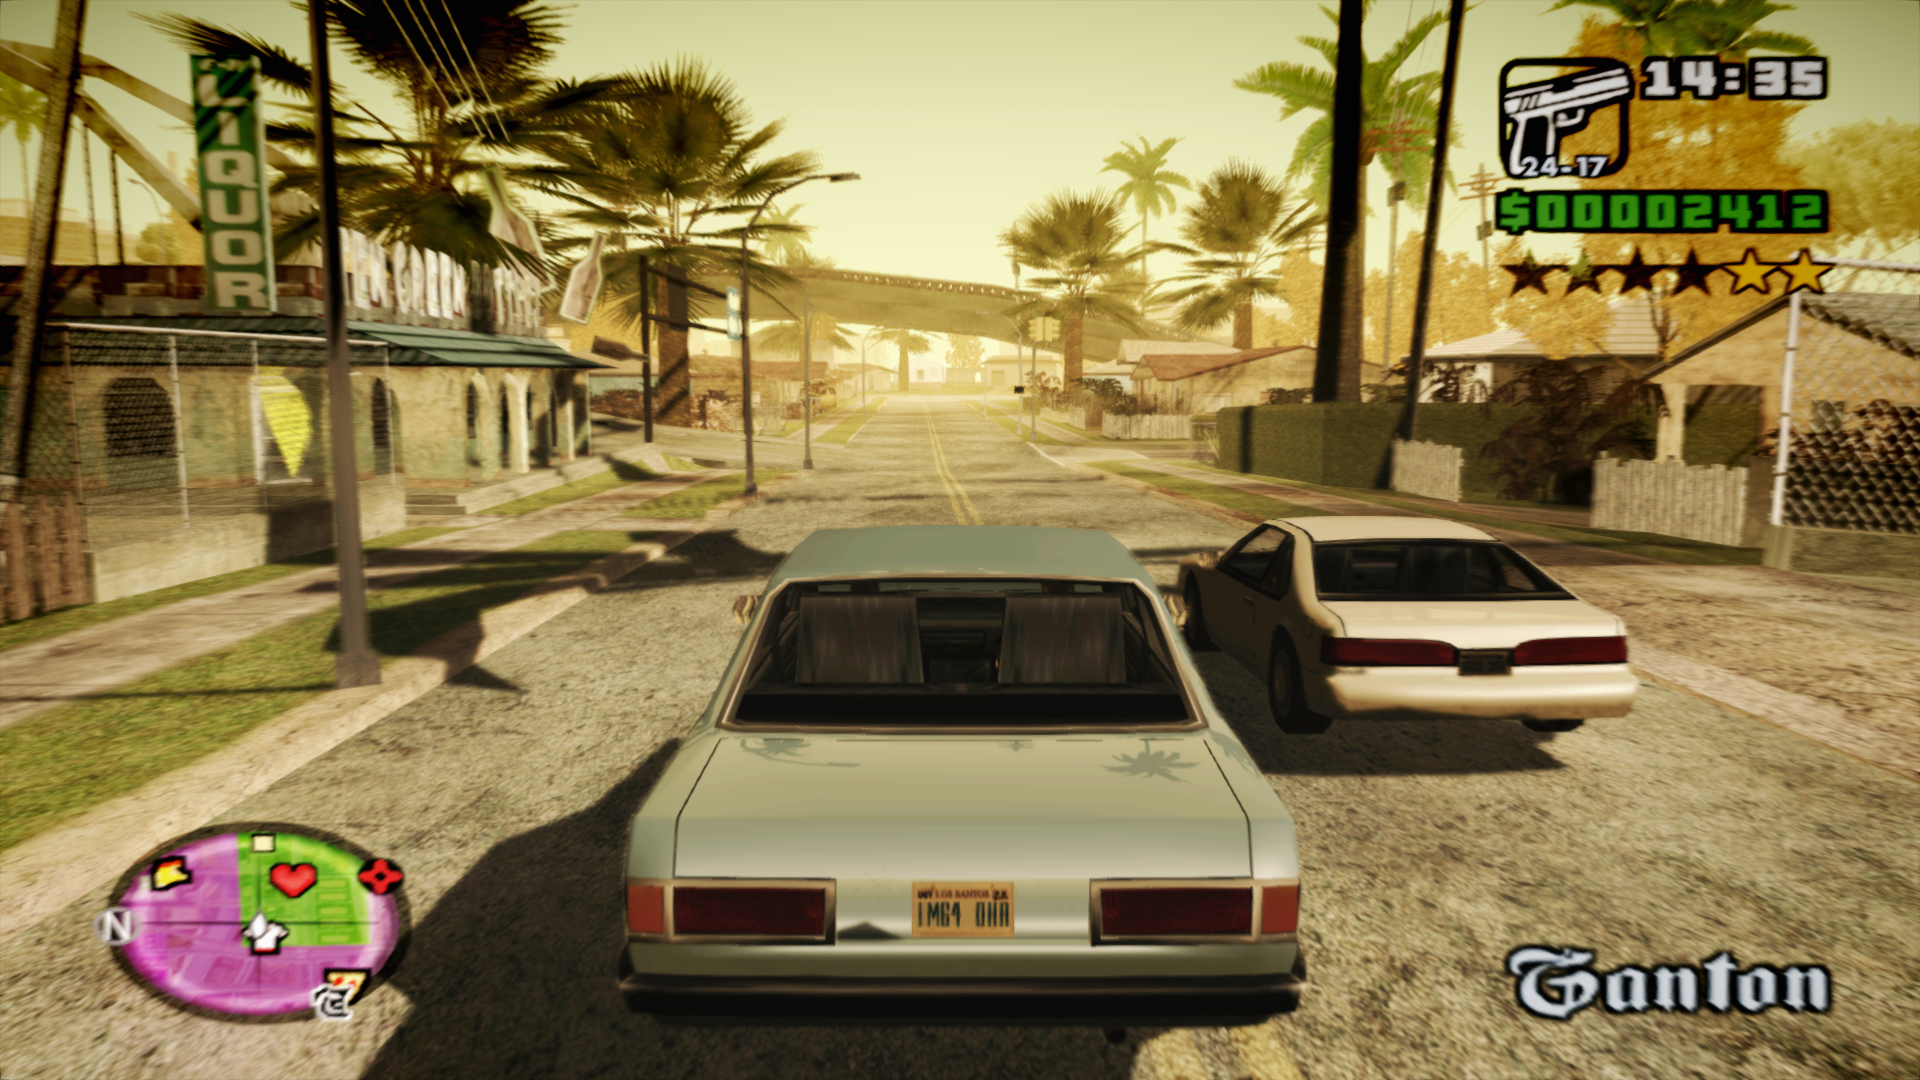 gta san andreas gta 5 graphics mod pc